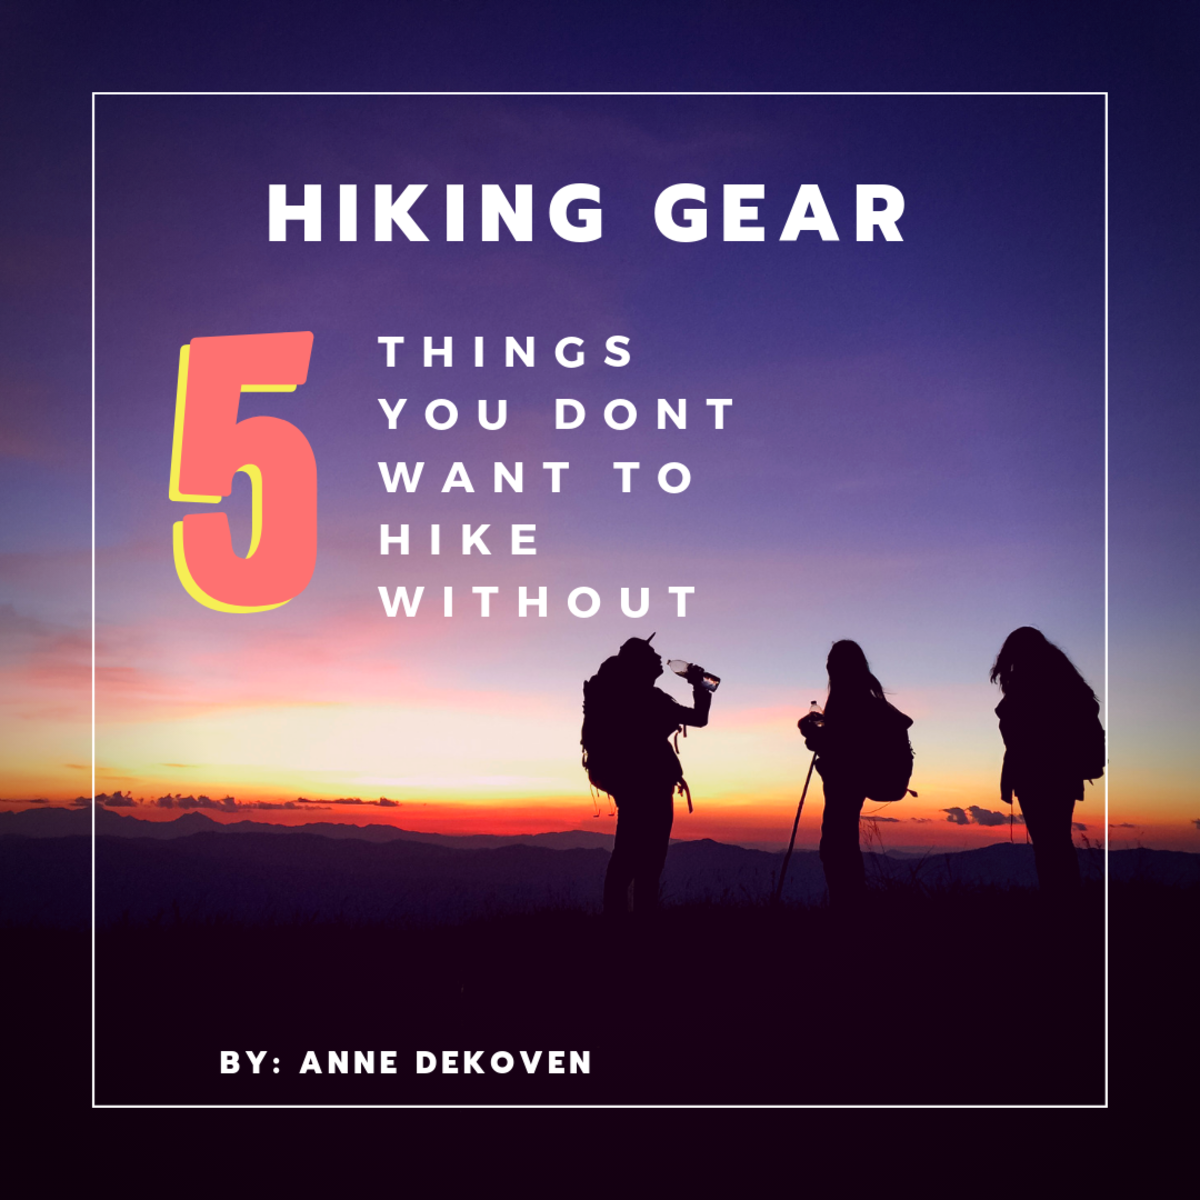 5 Awesome Things You Don't Want to Go Hiking Without